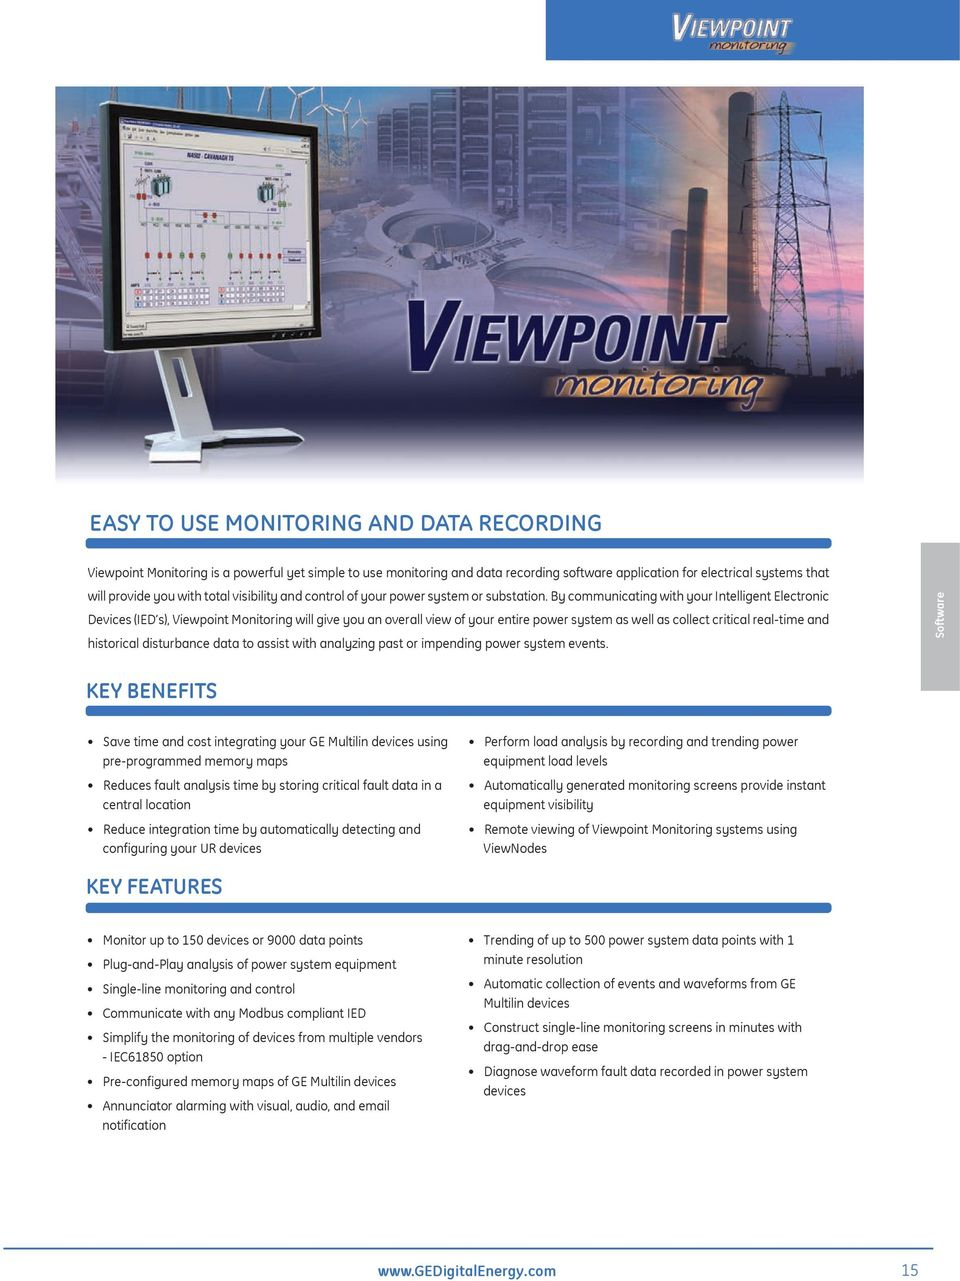 By communicating with your Intelligent Electronic Devices (IED s), Viewpoint Monitoring will give you an overall view of your entire power system as well as collect critical real-time and historical